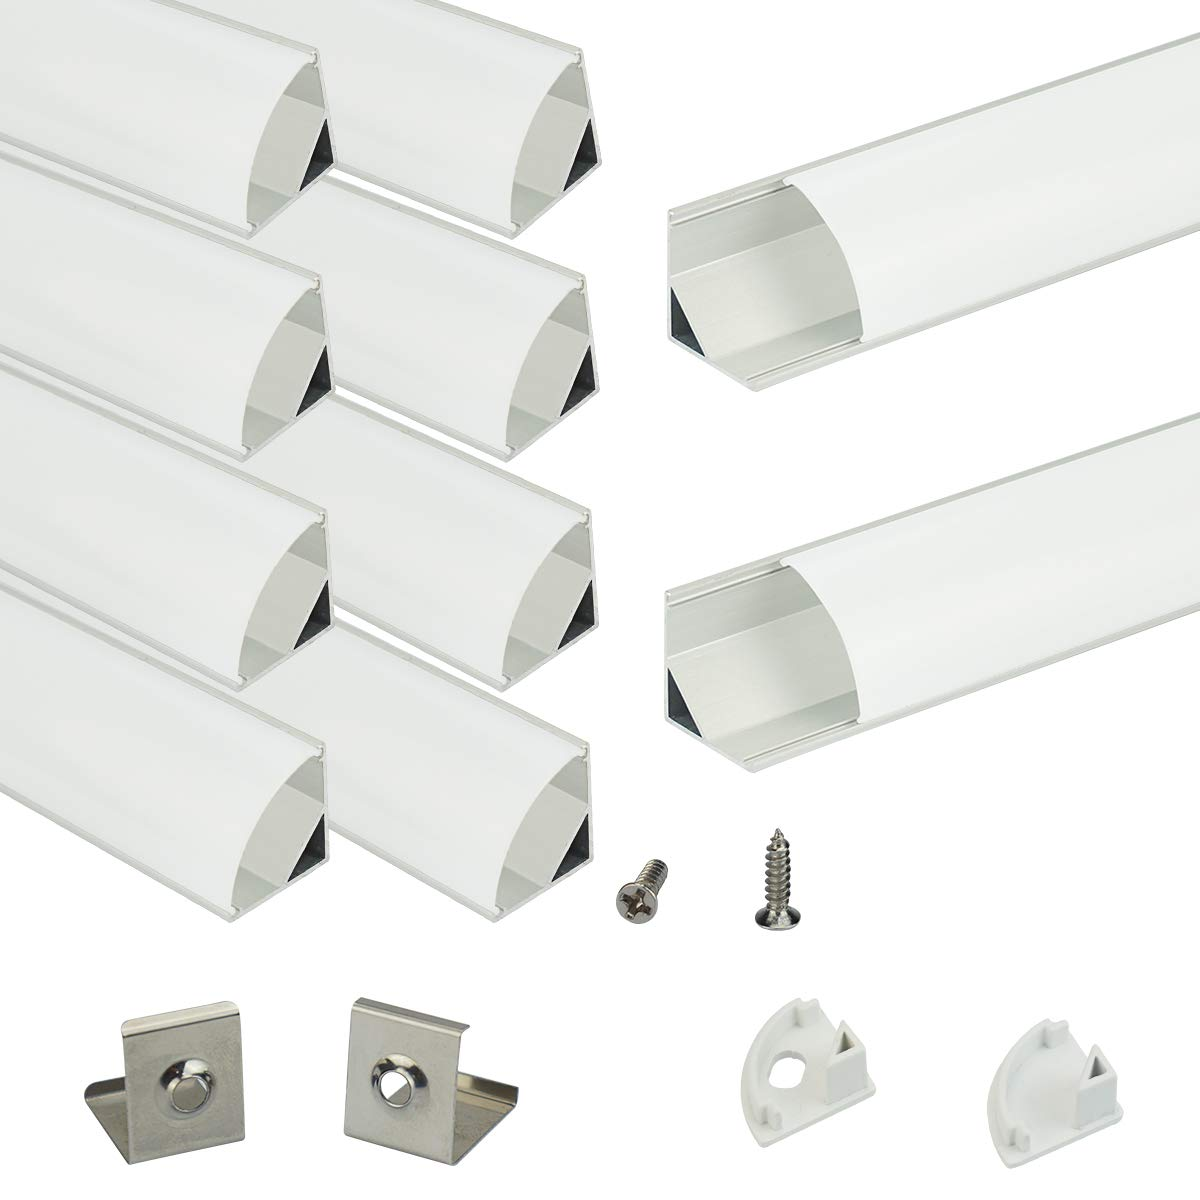 Muzata Aluminum Channel for Led Strip Light with Milky White Diffuser Cover. Aluminum Profile with Video, V-Shape, 10-Pack 6.6ft/2M V2SW,Series LV1 by Muzata